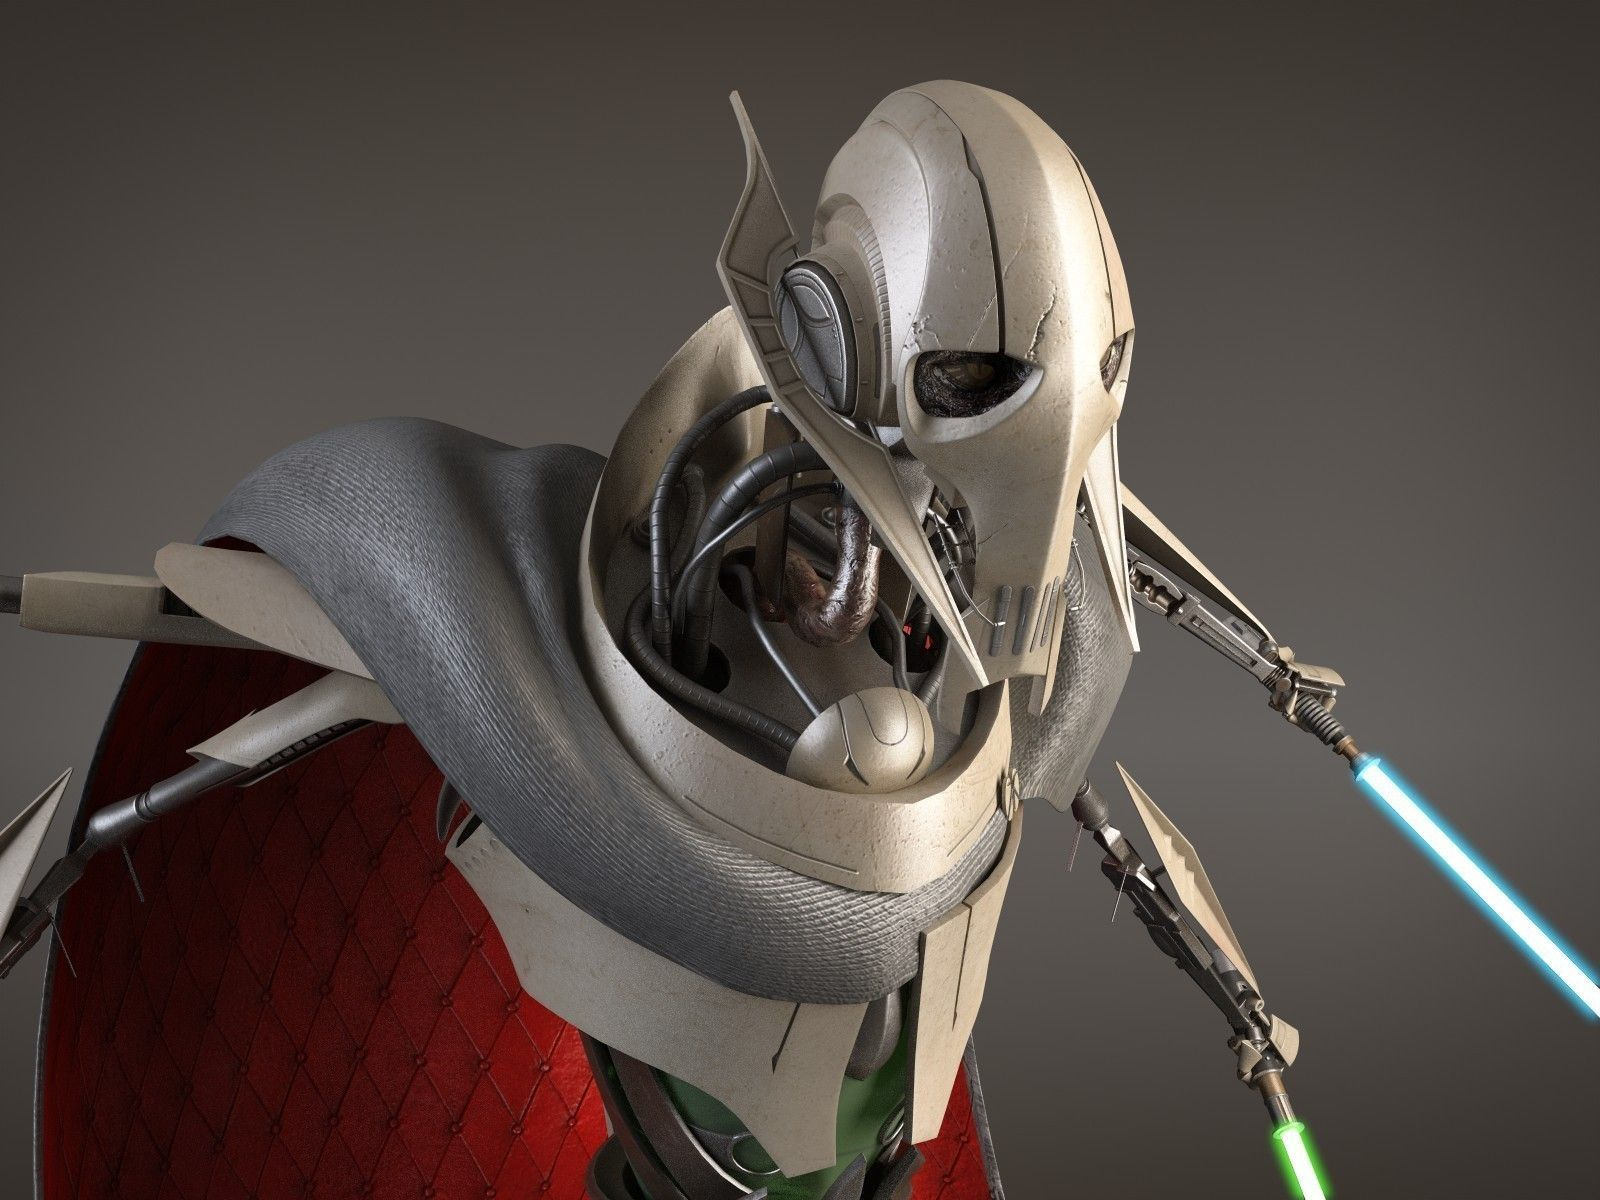 General Grievous (Star Wars: The Empire of Light)